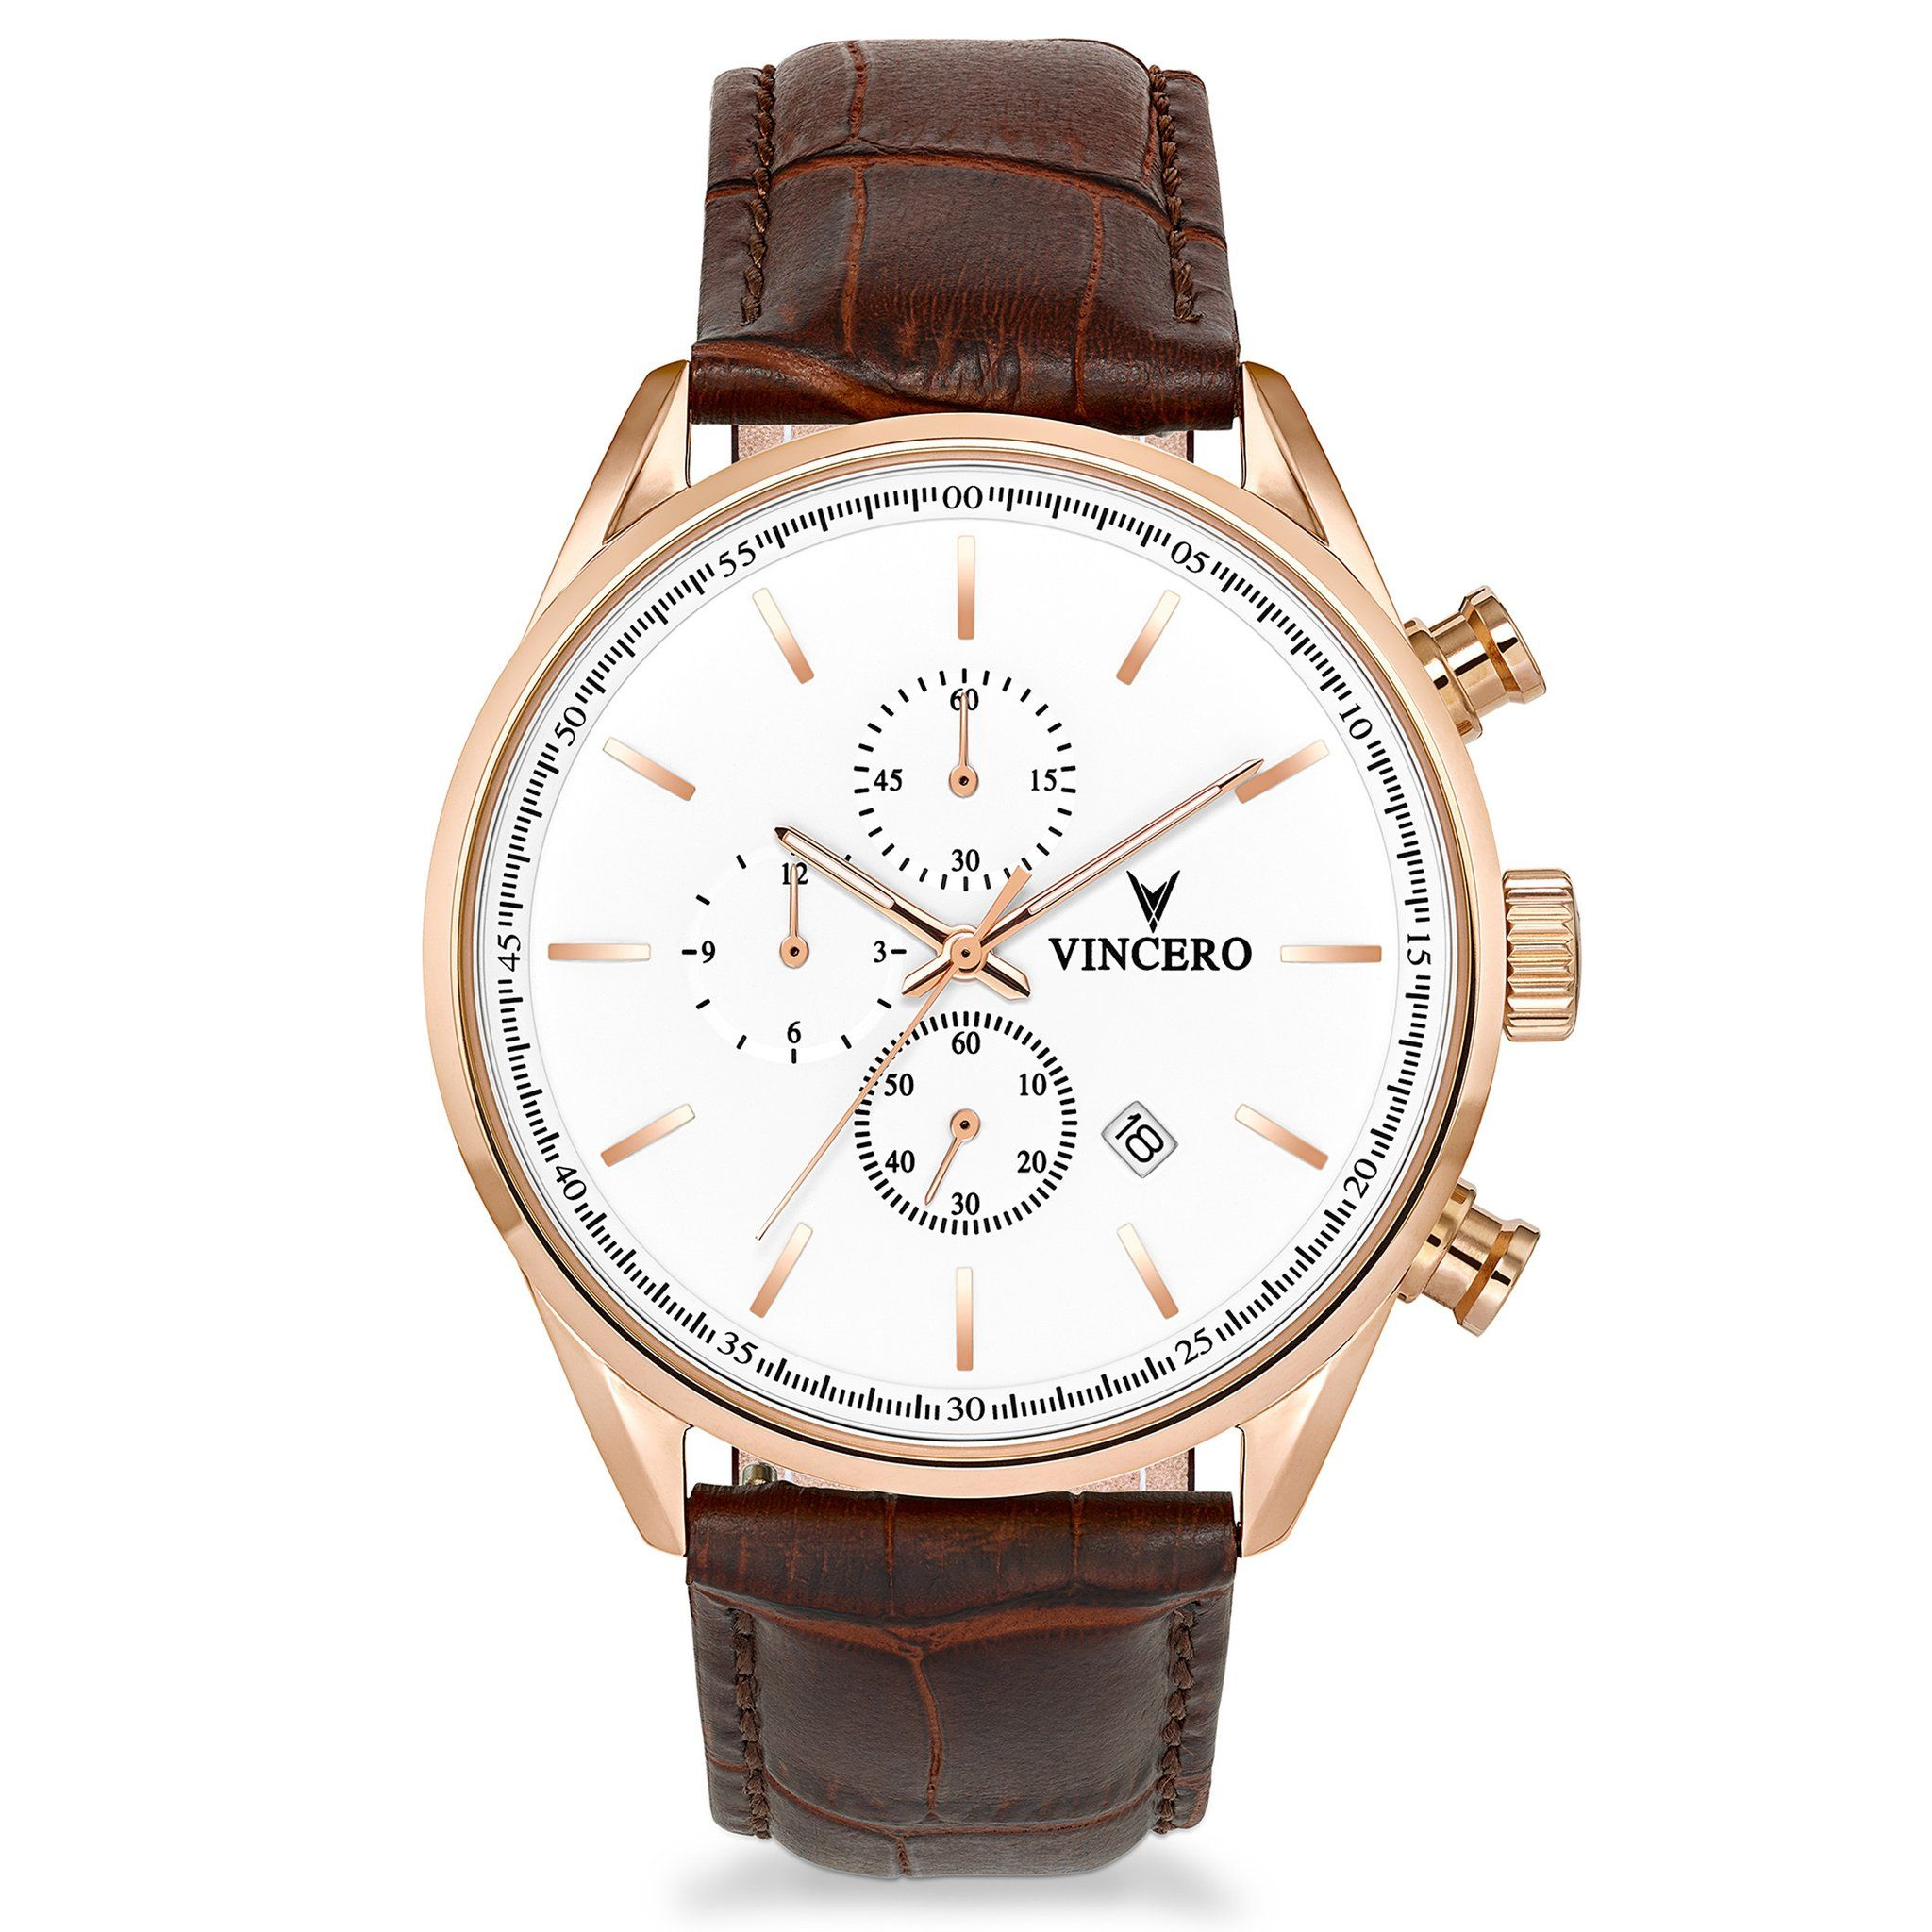 72d71088931 Men s Luxury Chrono S Chronograph Watch Mocha Brown Croc Italian Leather  Strap Band White Watch Face Rose Gold Case Clasp